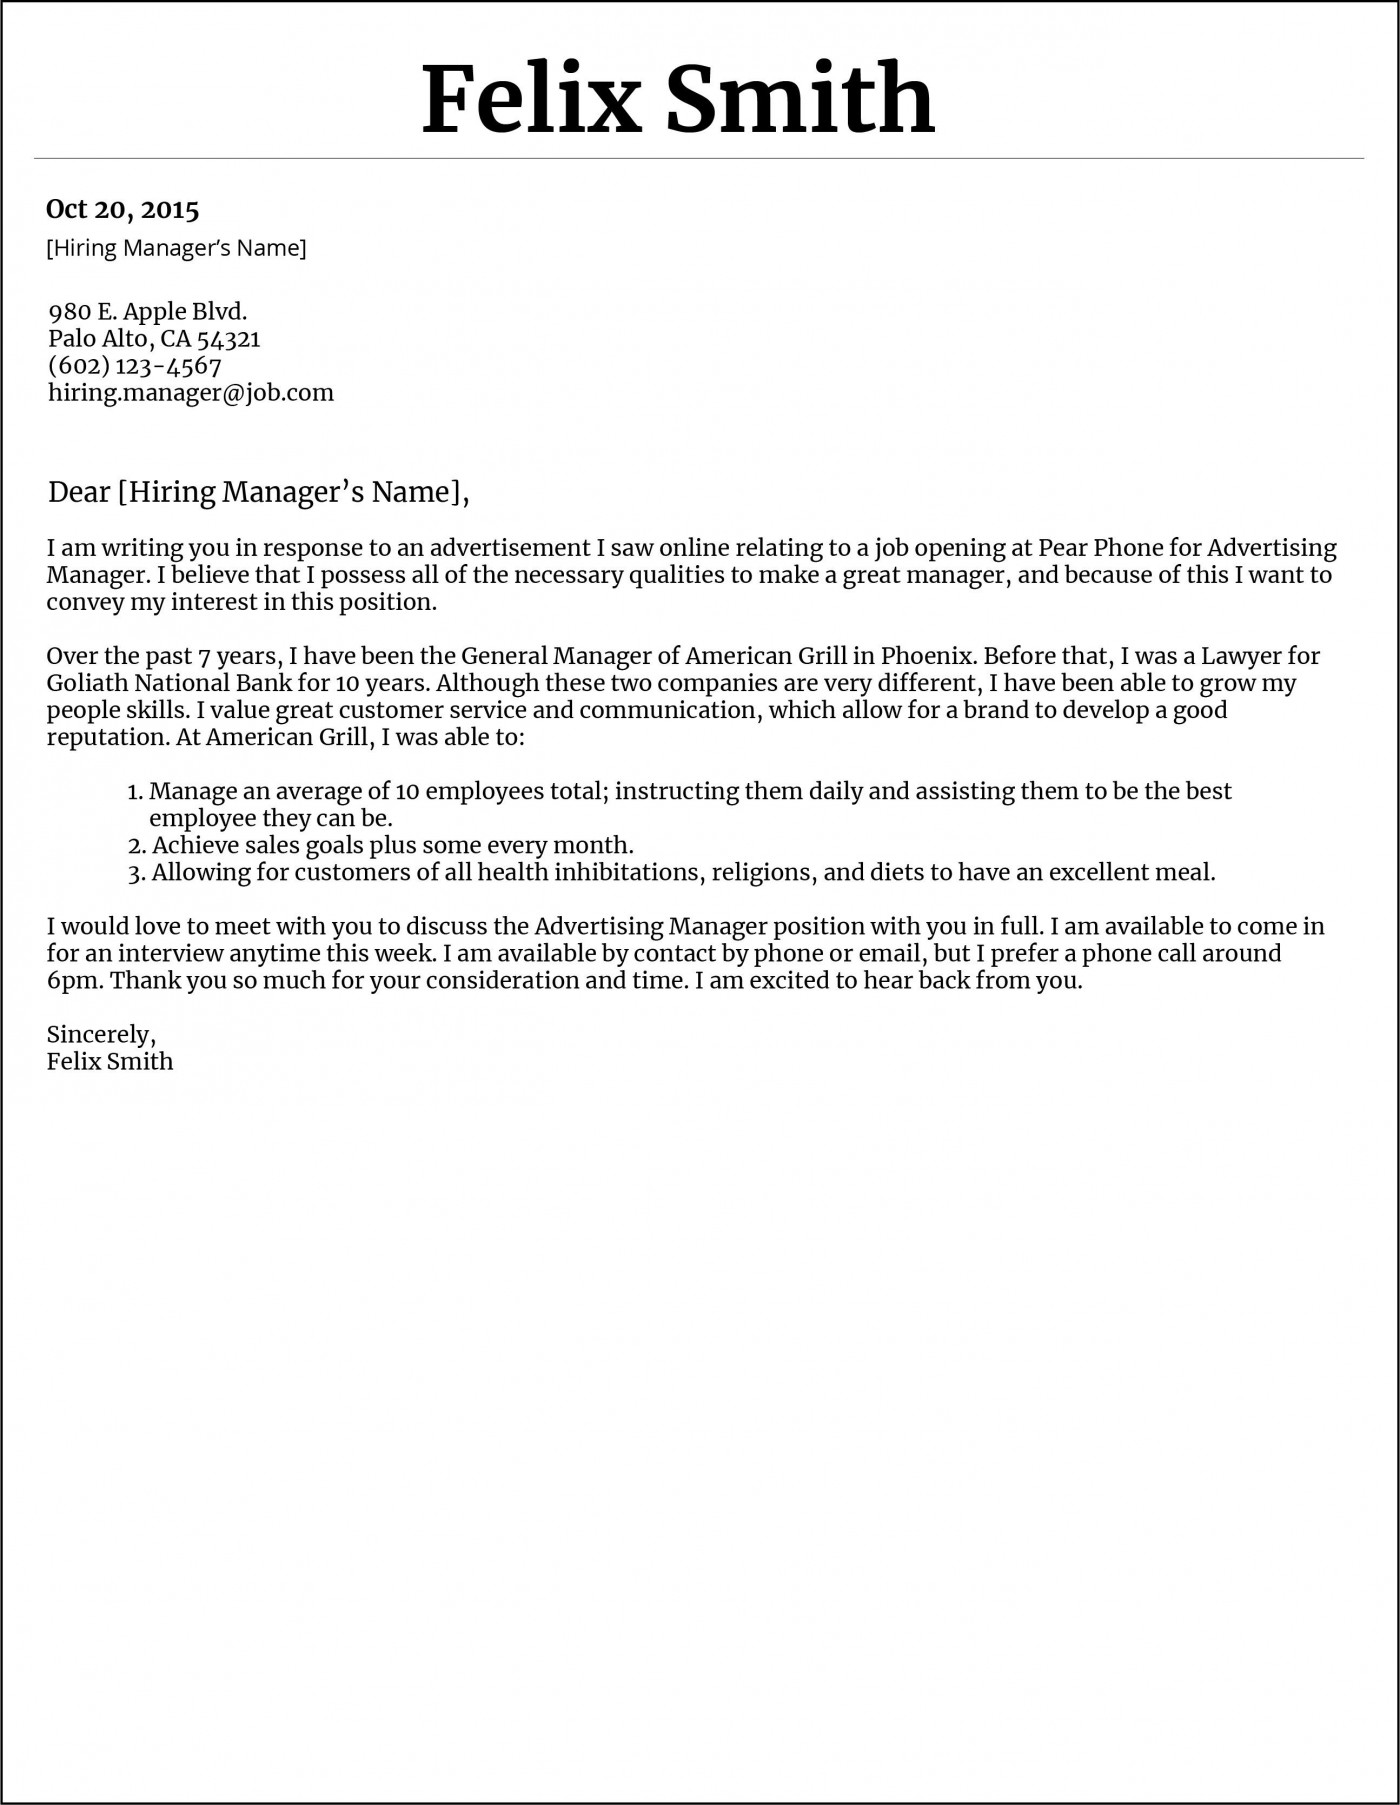 010 Marvelou General Manager Cover Letter Template Highest Clarity  Hotel1400